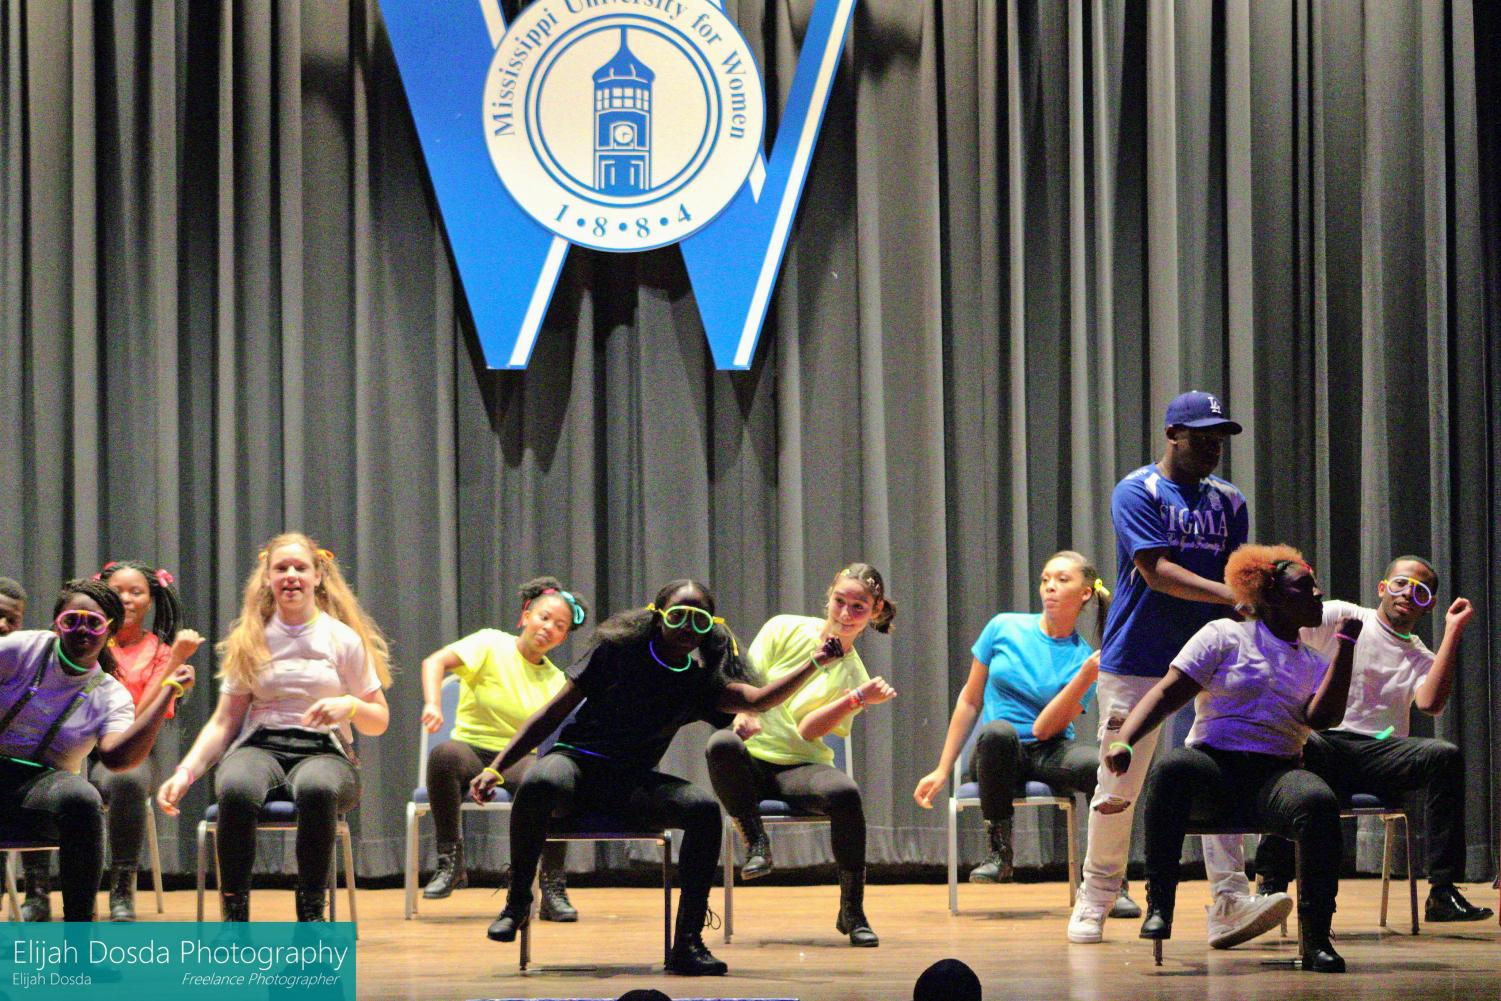 The Blu Knights and Blu Diamondz teamed up to take on this step show.